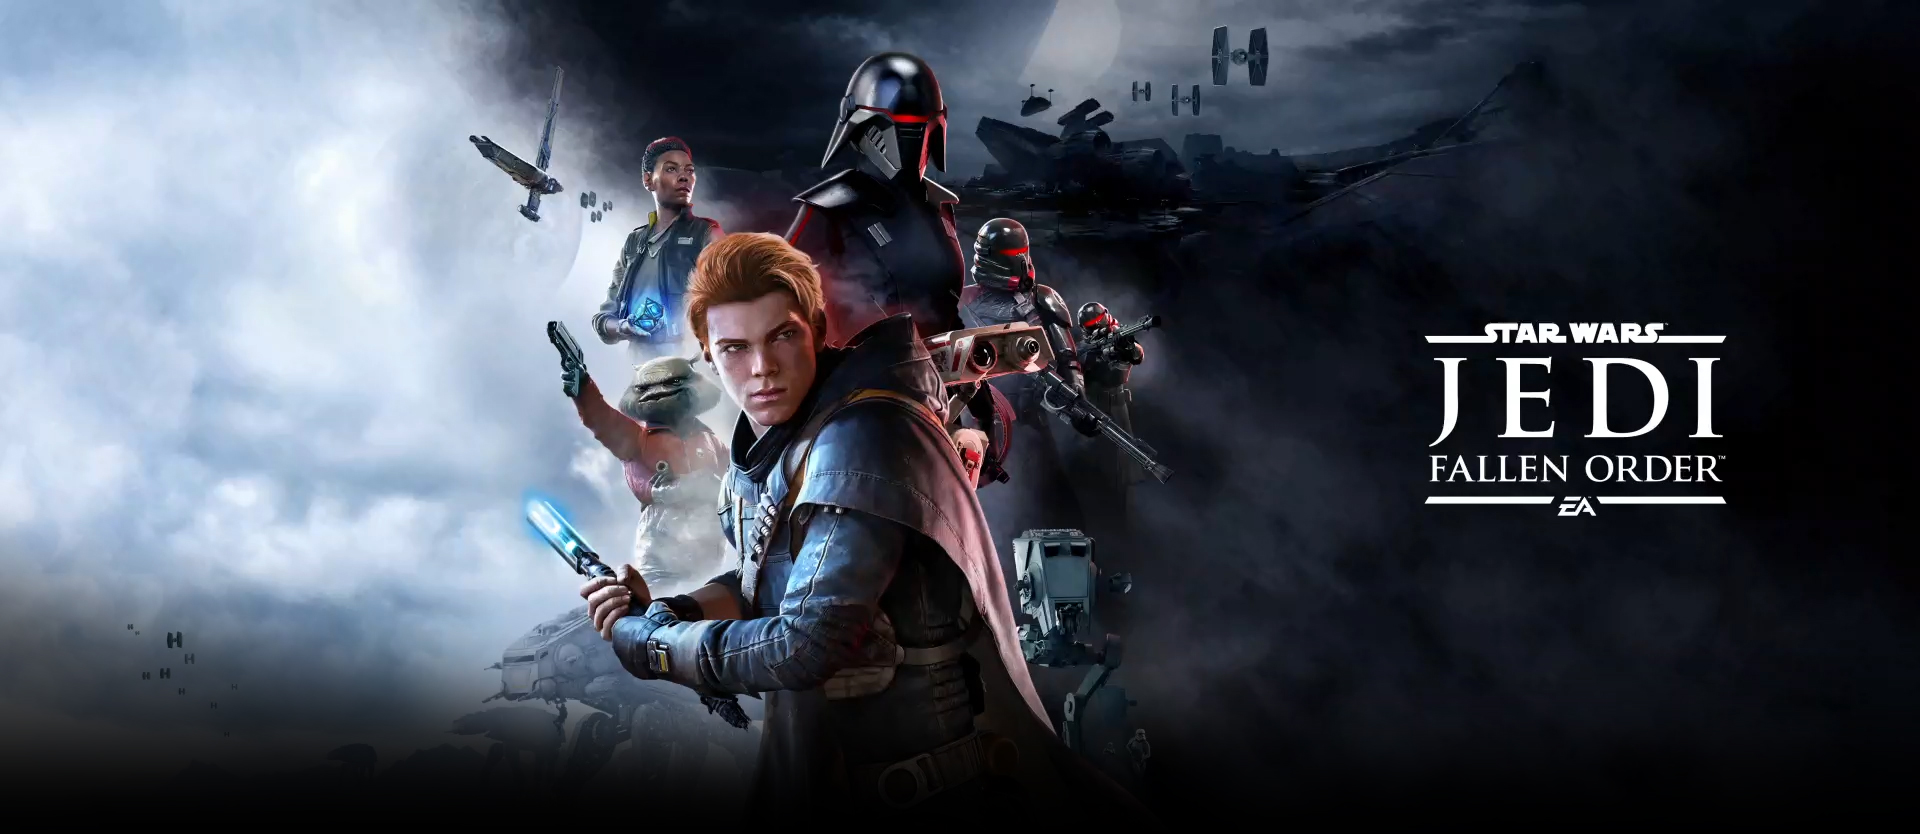 Star Wars Jedi Fallen Order For Xbox One Xbox